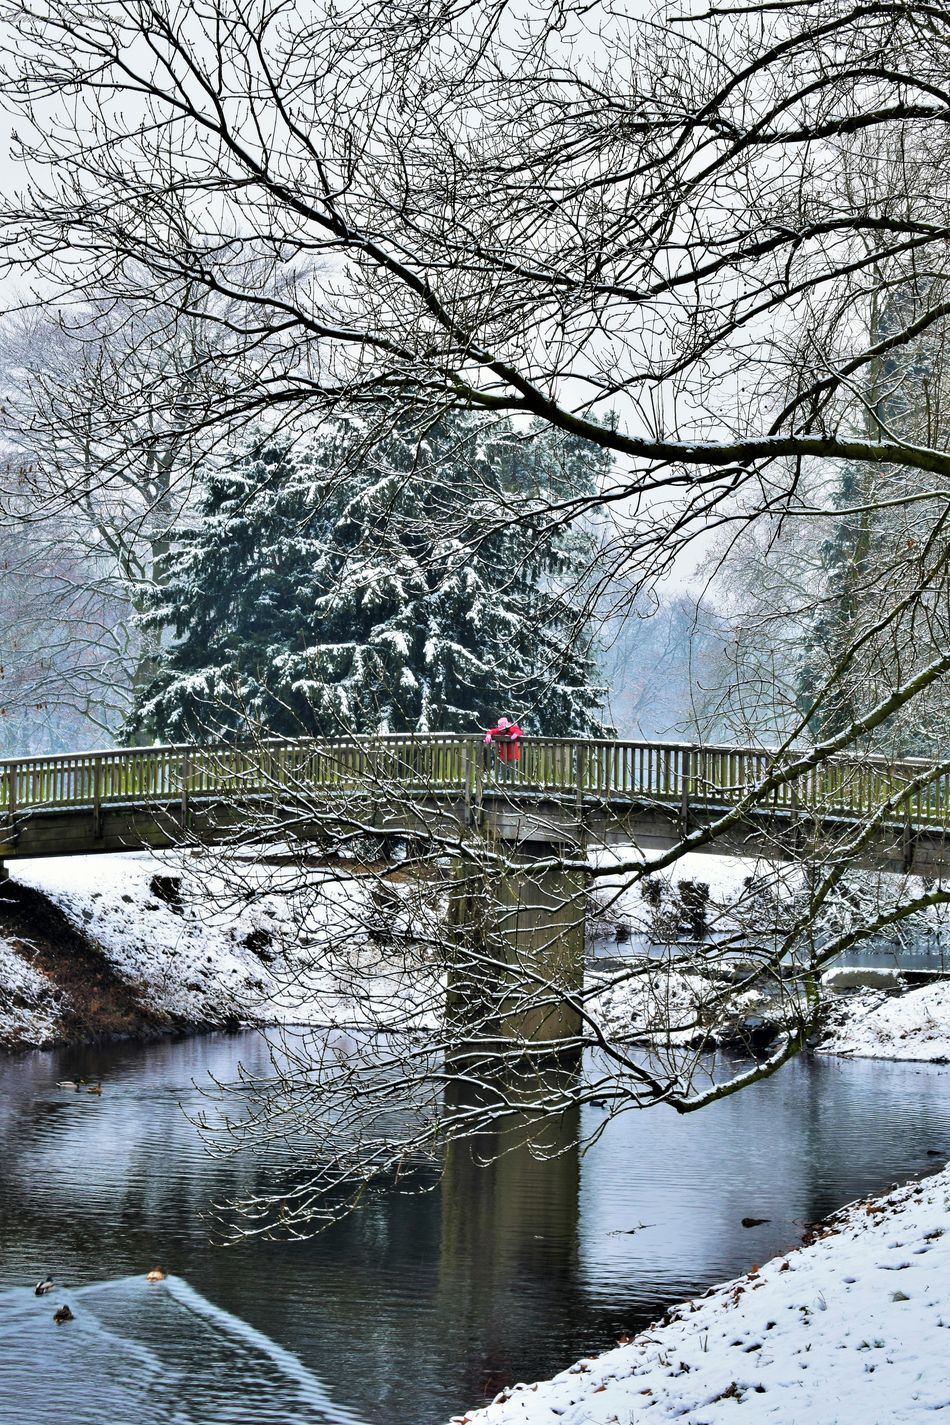 Architecture Beauty In Nature Brücke Built Structure Covered Bridge Einsam Germany Girl Girl In Red Ice Kid Mädchen Outdoors Reflection Rote Kleidung Schnee Snow Stille Tranquility Verträumt девочка мост отражение отражение в воде снег EyeEmNewHere